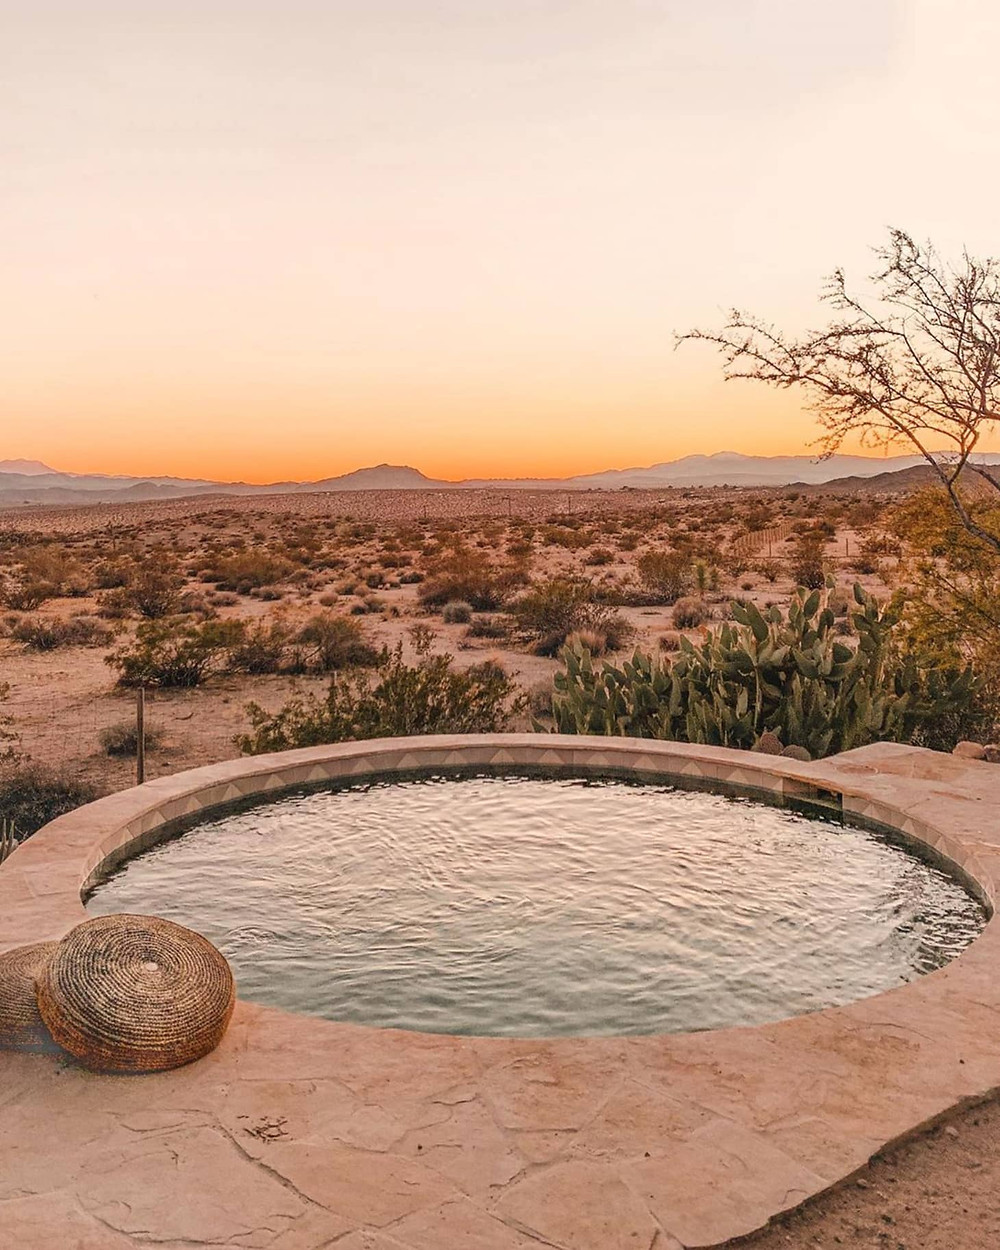 A circular concrete outdoor pool is in the foreground, surrounded by tan pavers. Two round brown cushions lay on the ground next to the pool. The pool overlooks a breathtaking view of Arizona style desert with brown sand and dark green greenery, with a sunset.